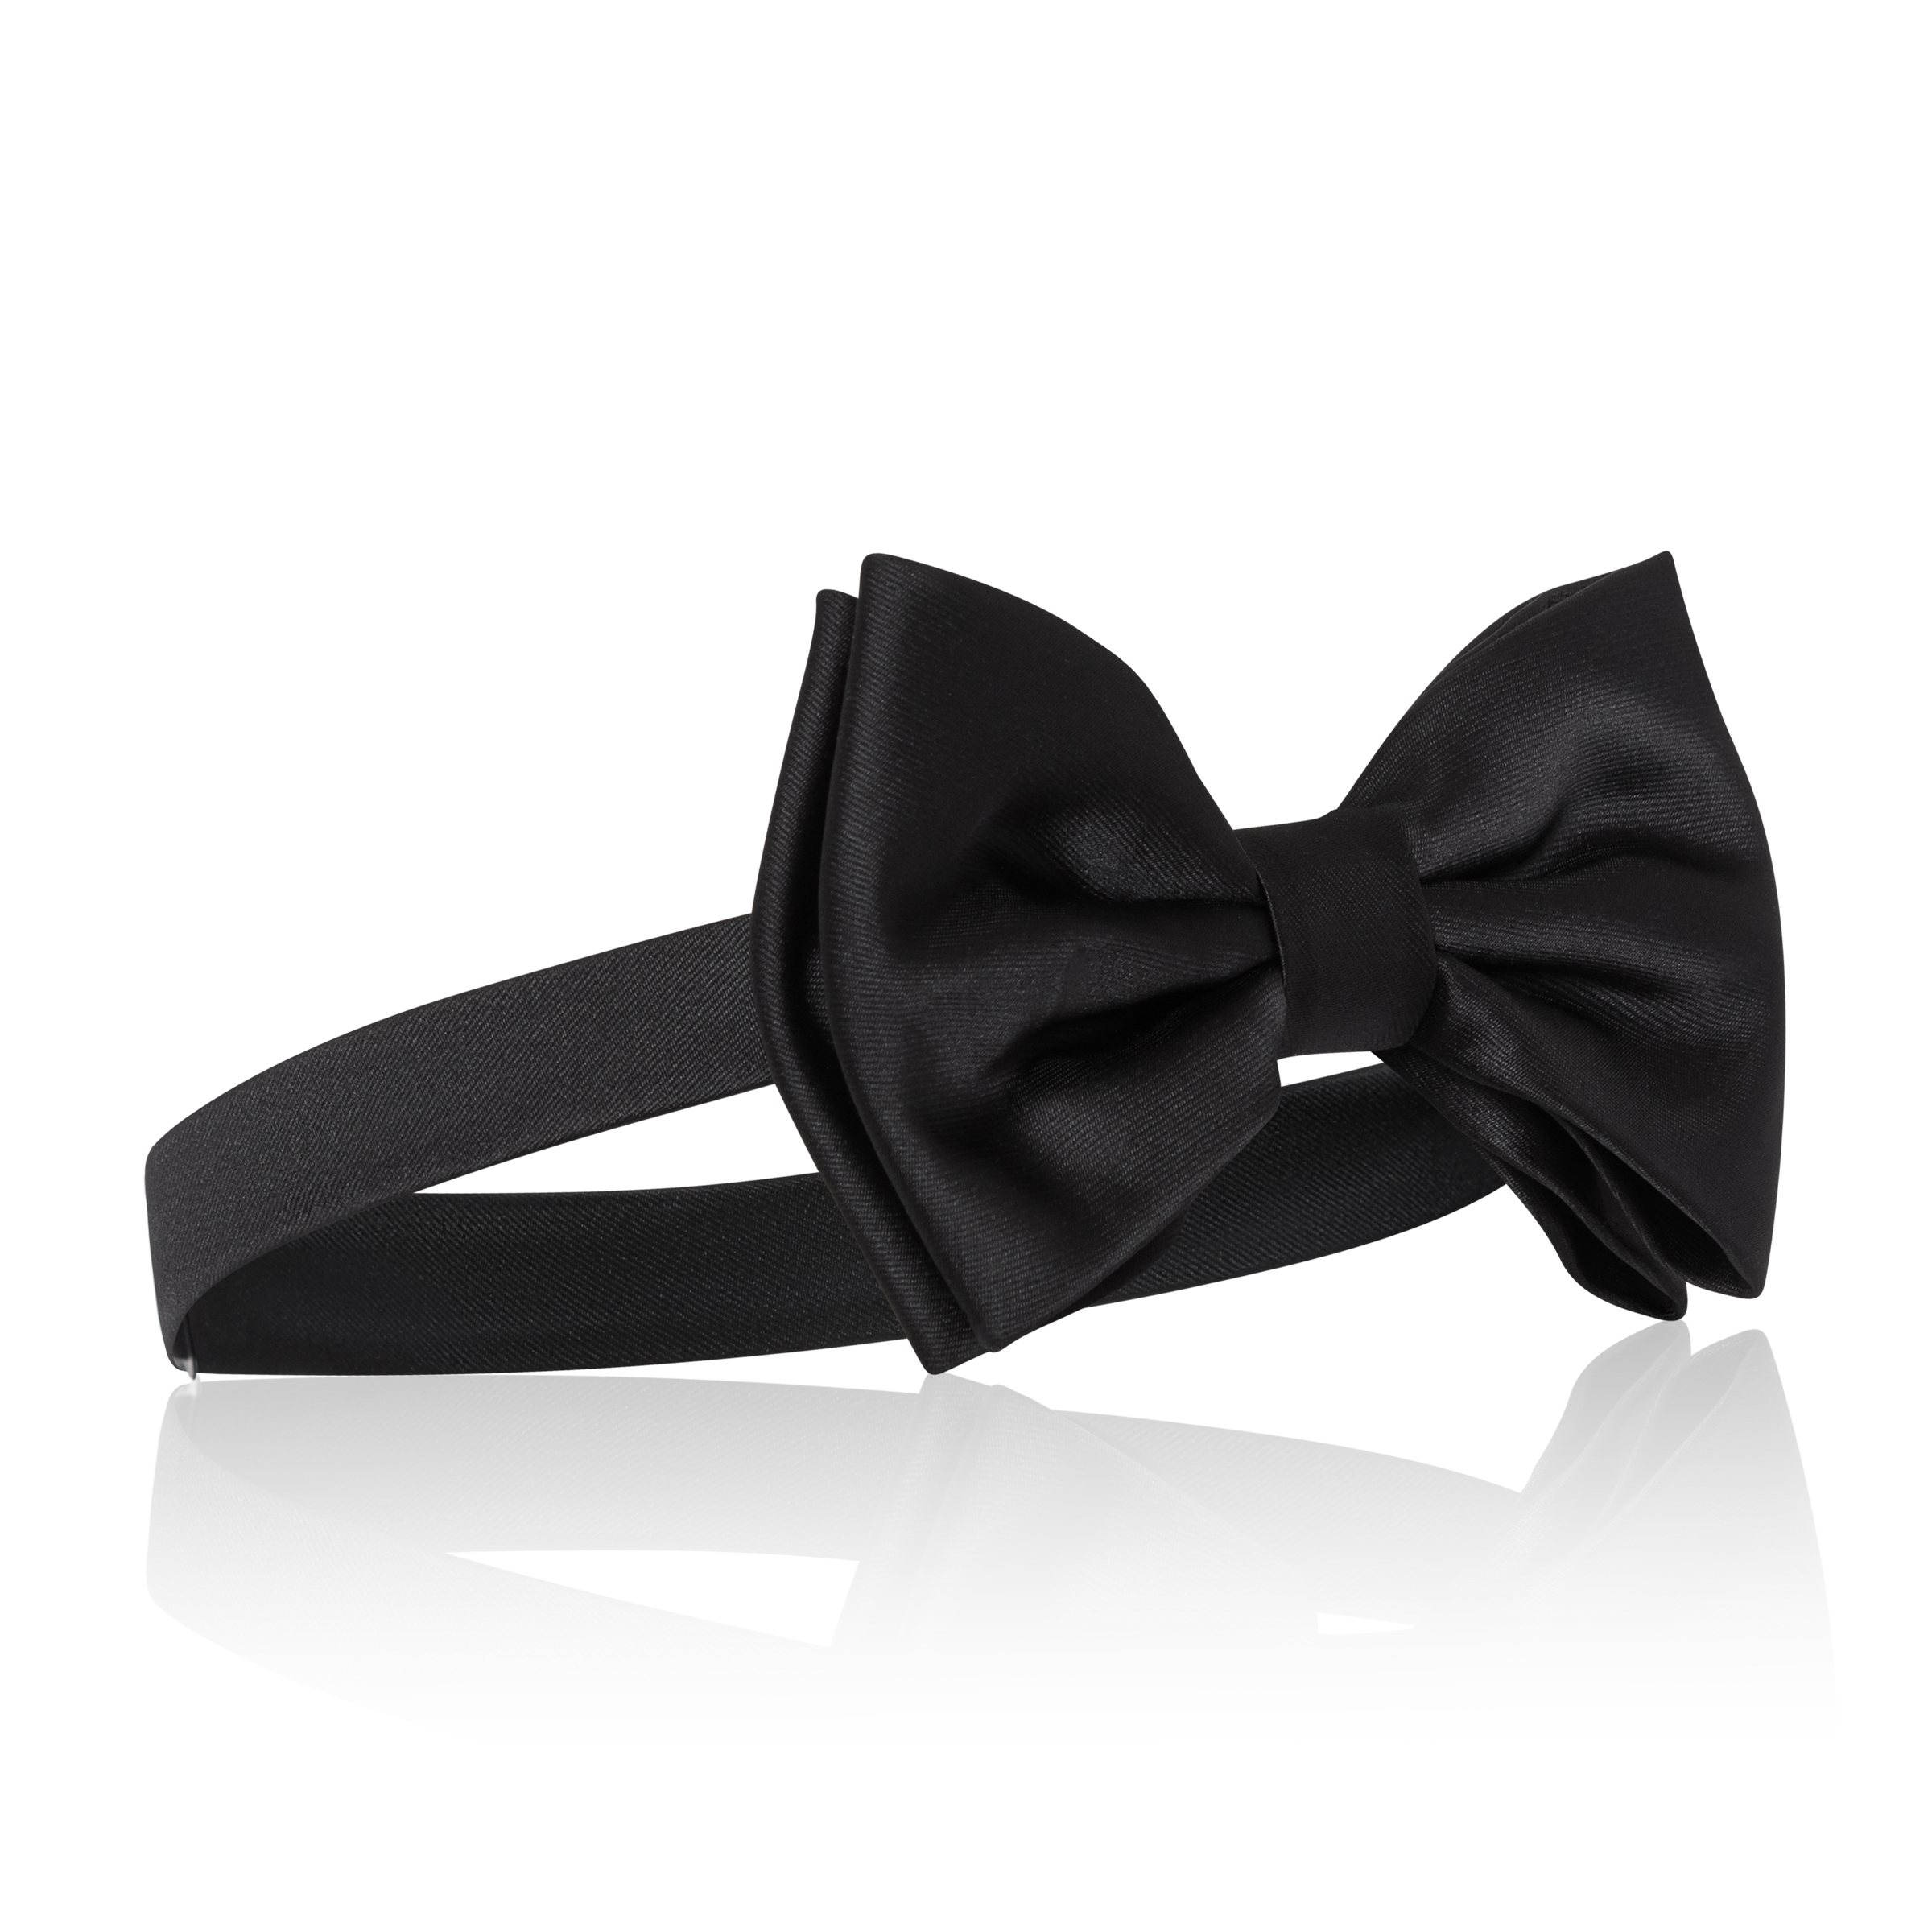 Bow tie product image